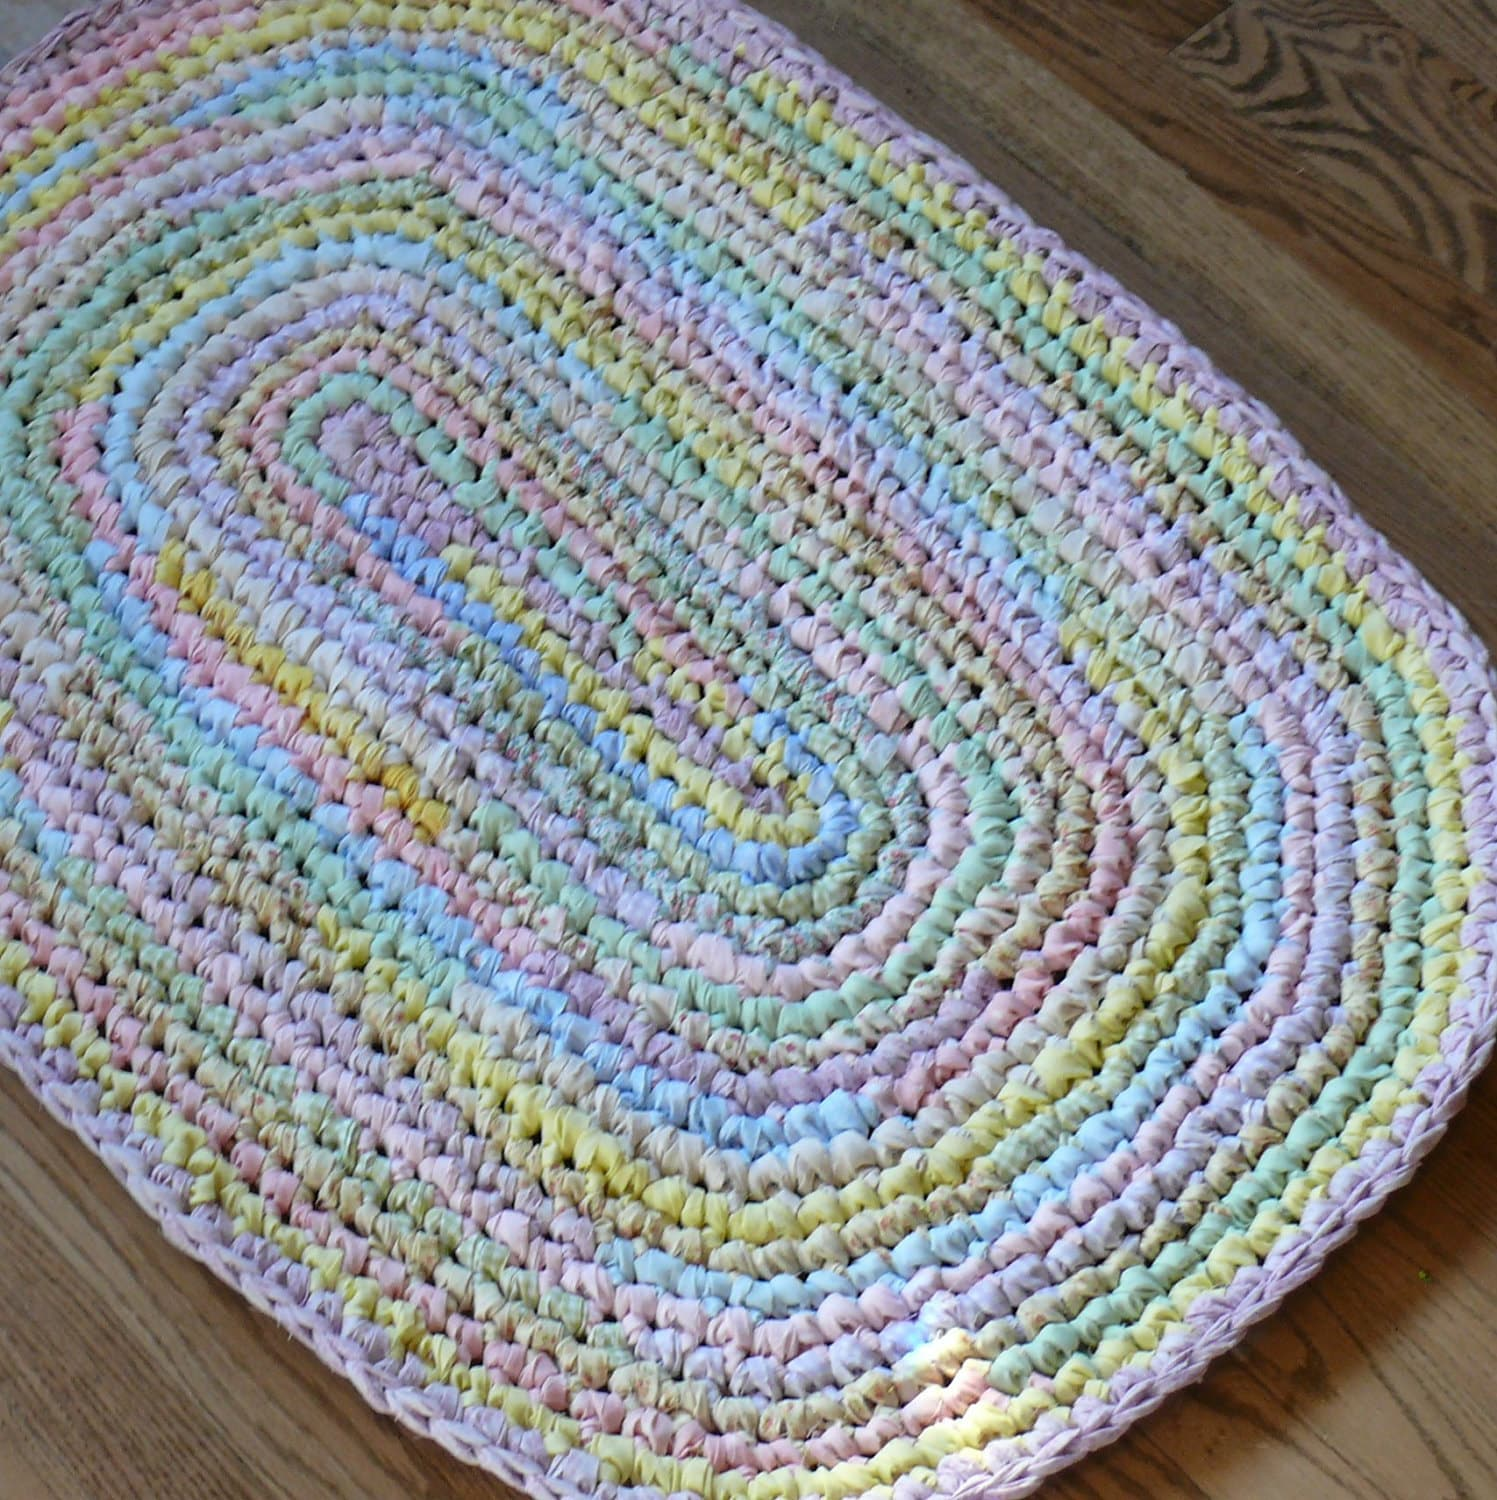 Crocheted Oval Rag Rug Pastel Colors